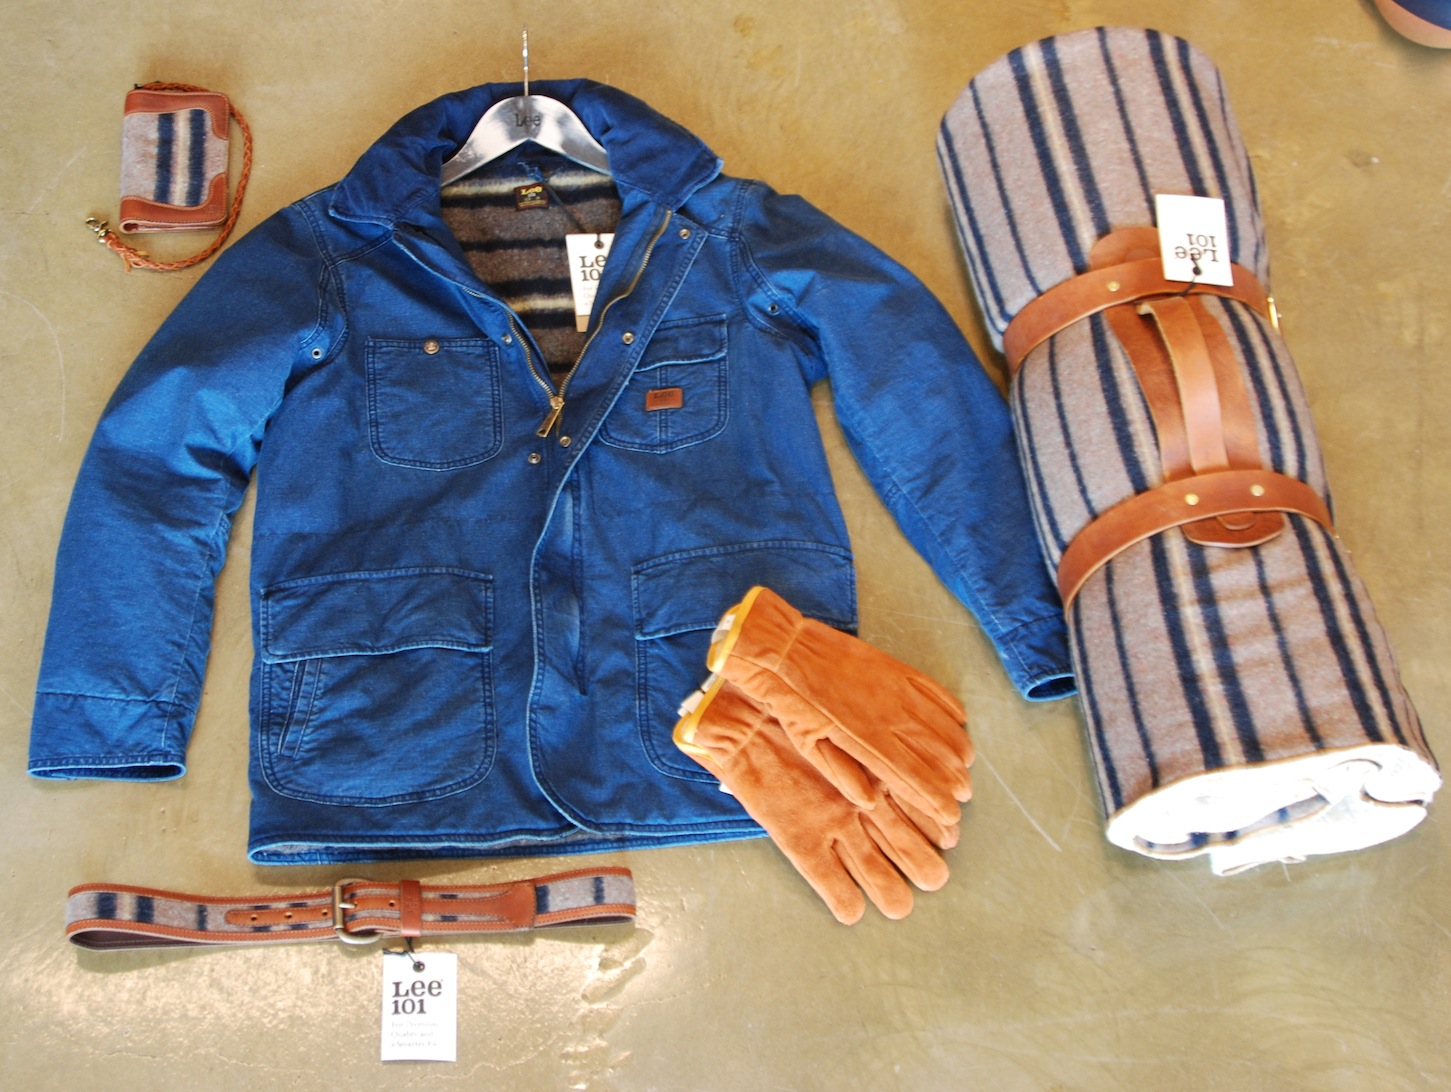 Winter Horse Blankets >> CHAD'S DRYGOODS: LEE STORM RIDER JACKET - HISTORY REPEATING